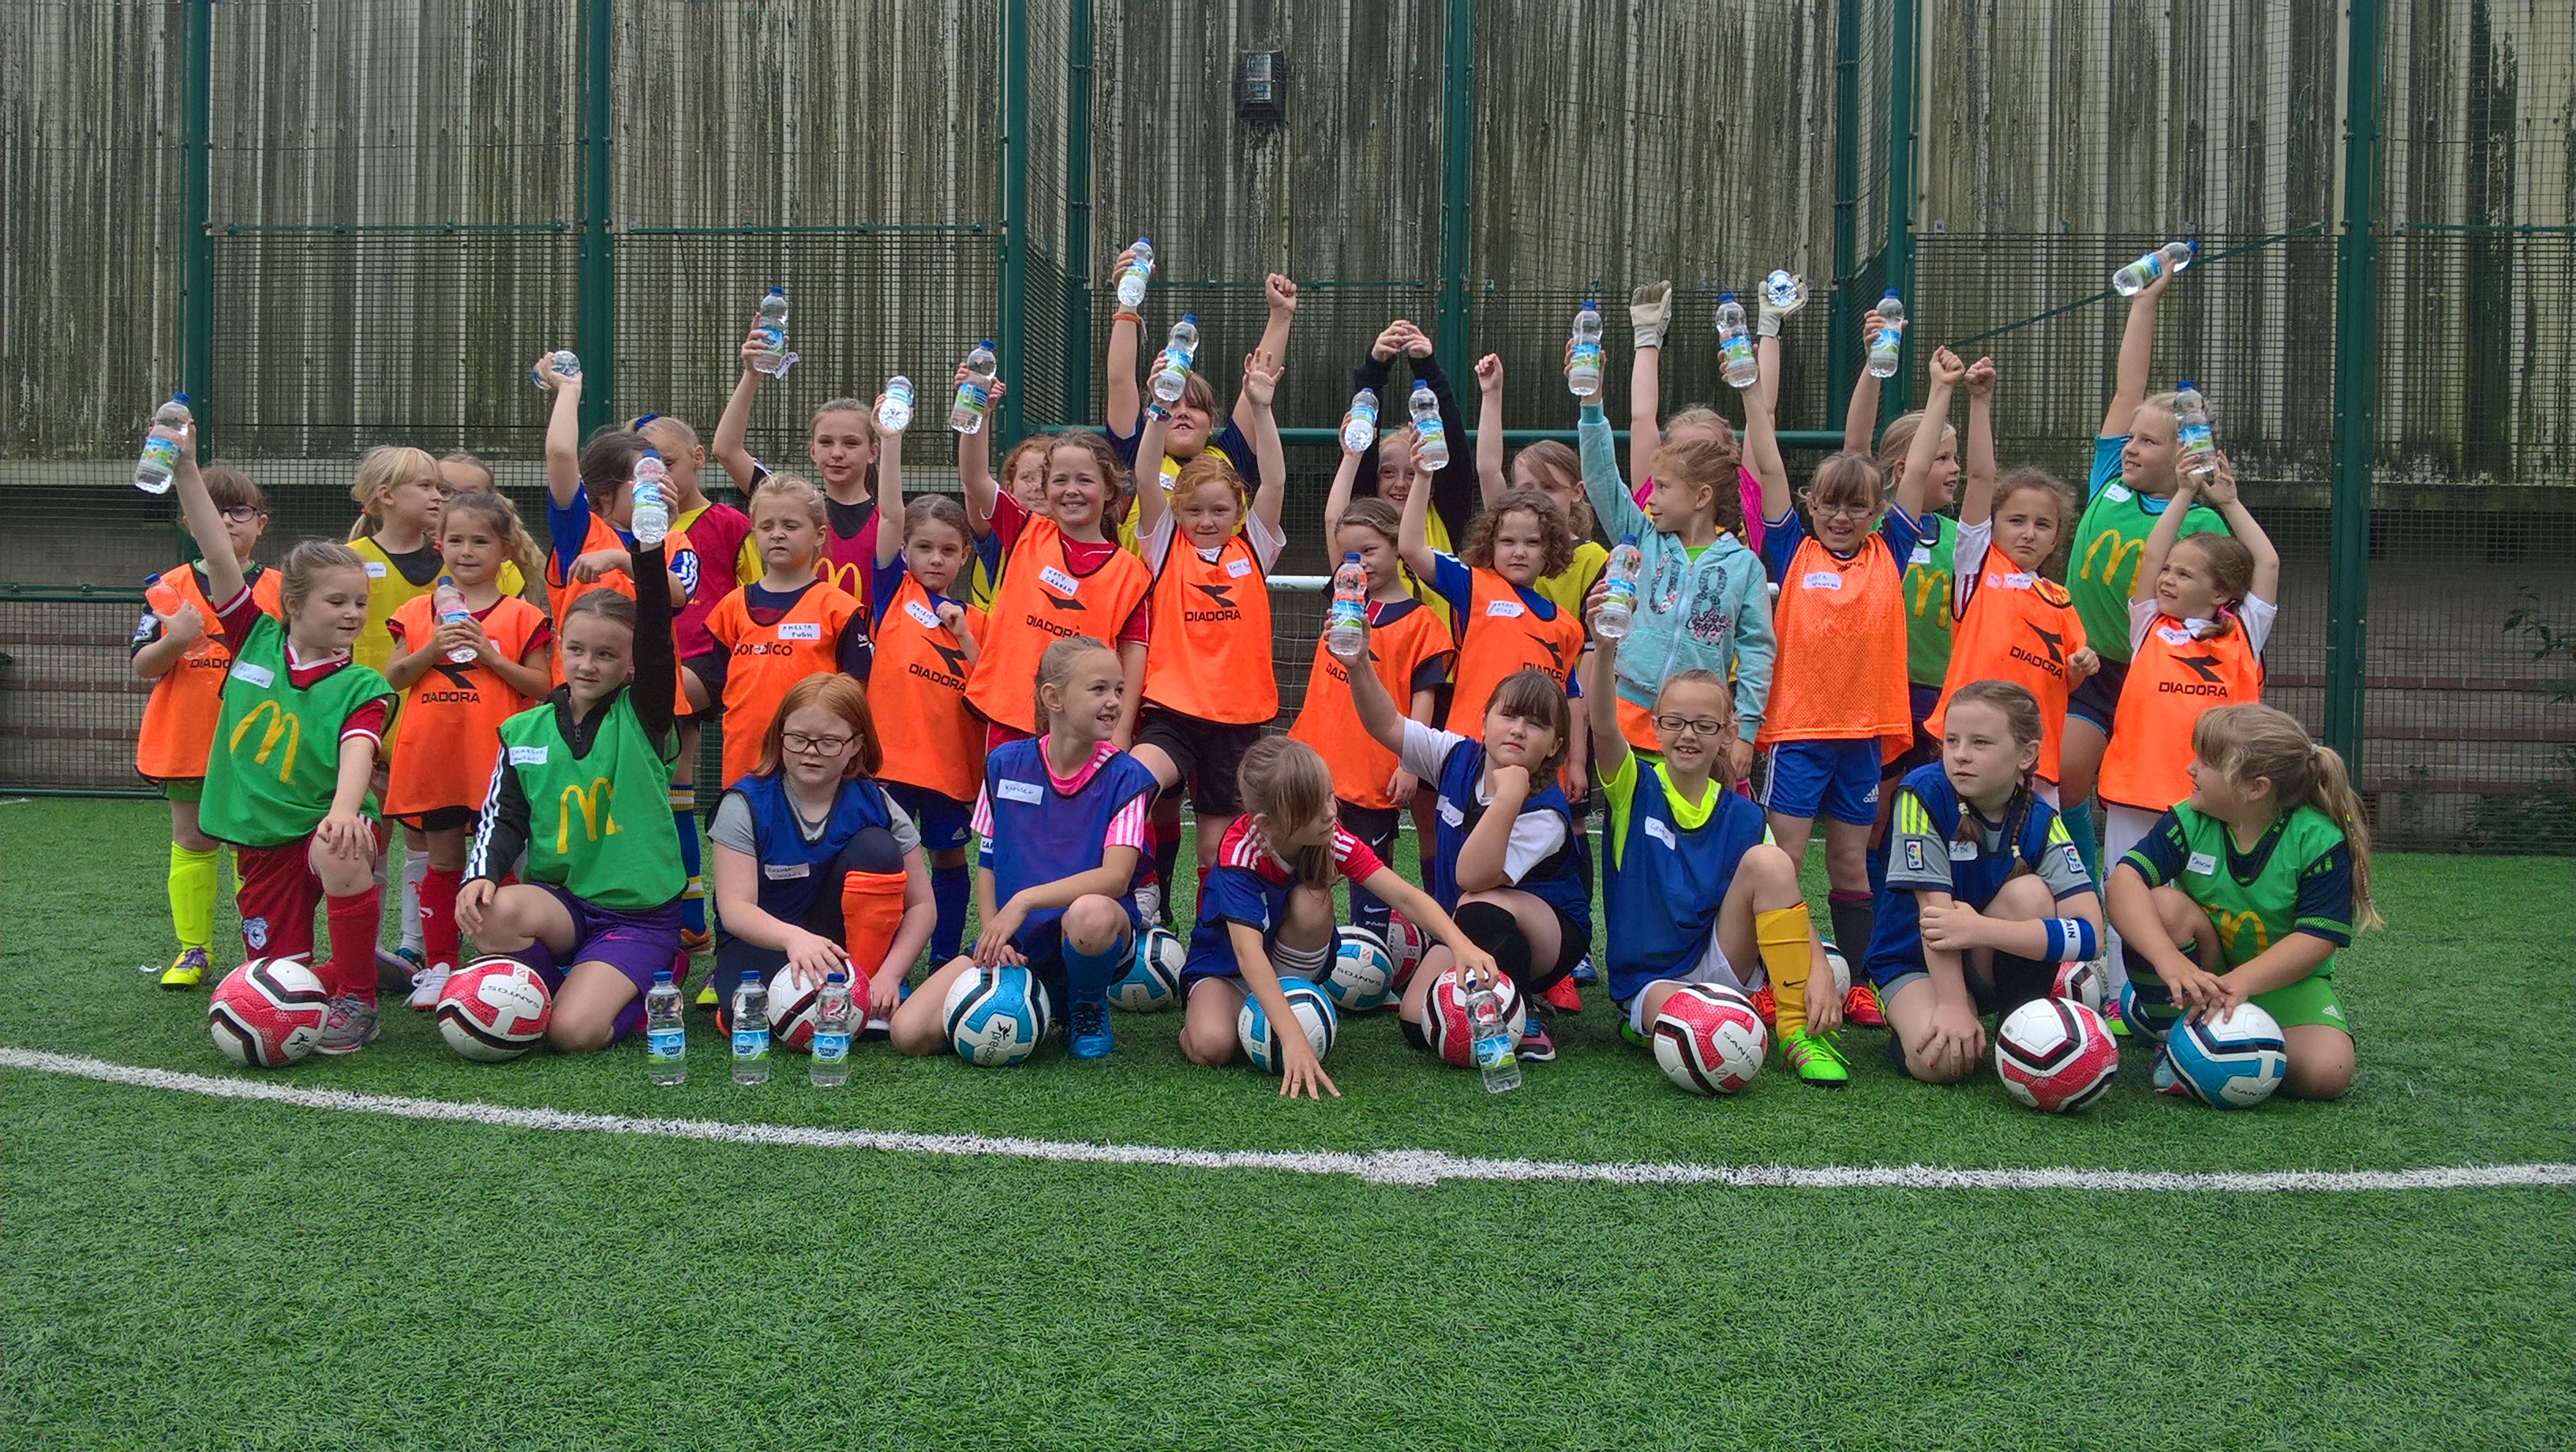 Baglan girls play historic first game after success of summer soccer camps